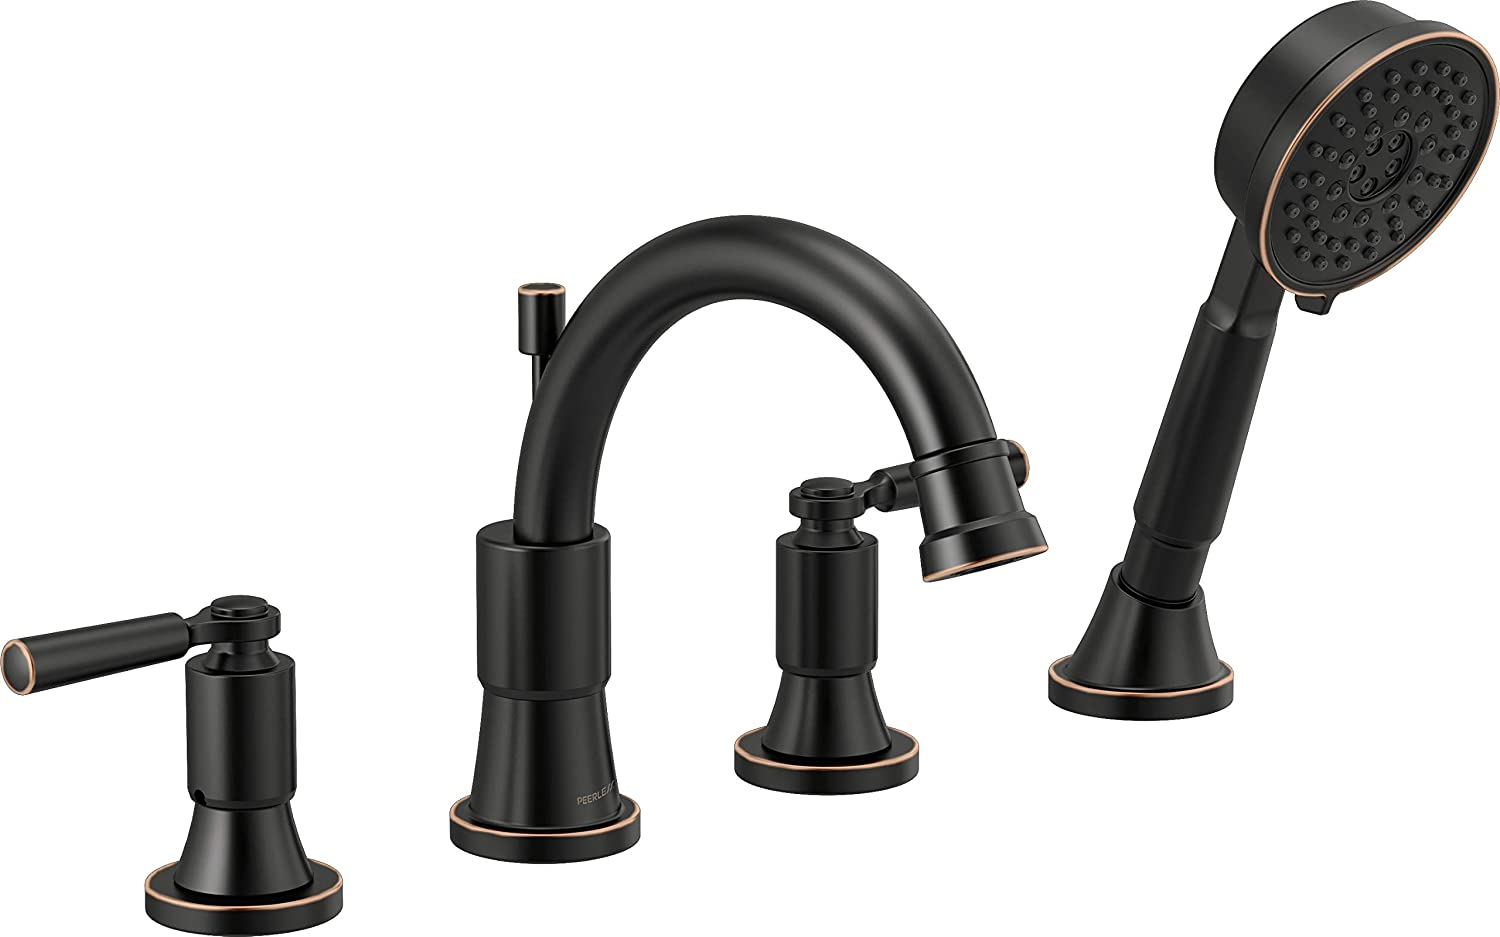 Delta Faucet PTT4523-OB Westchester Roman Tub Trim Kit with Hand Shower, Oil-Rubbed Bronze